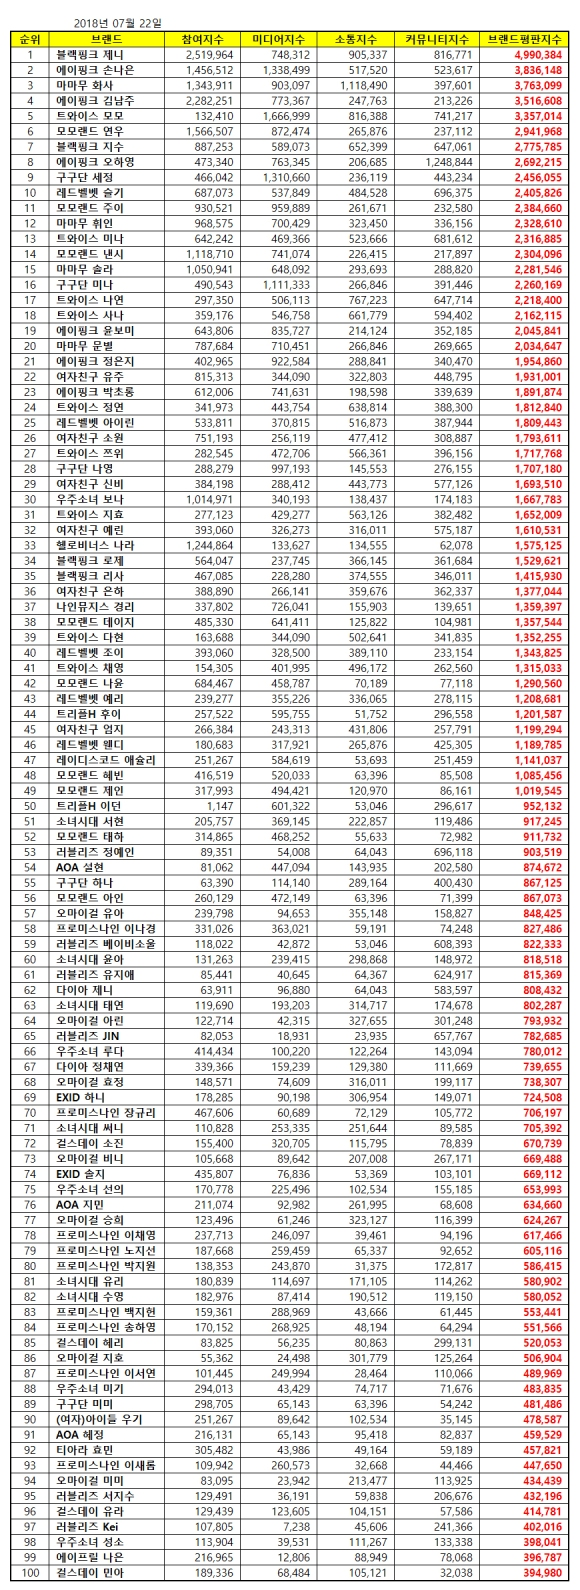 180722 july 2018 brand index reputation gg member list